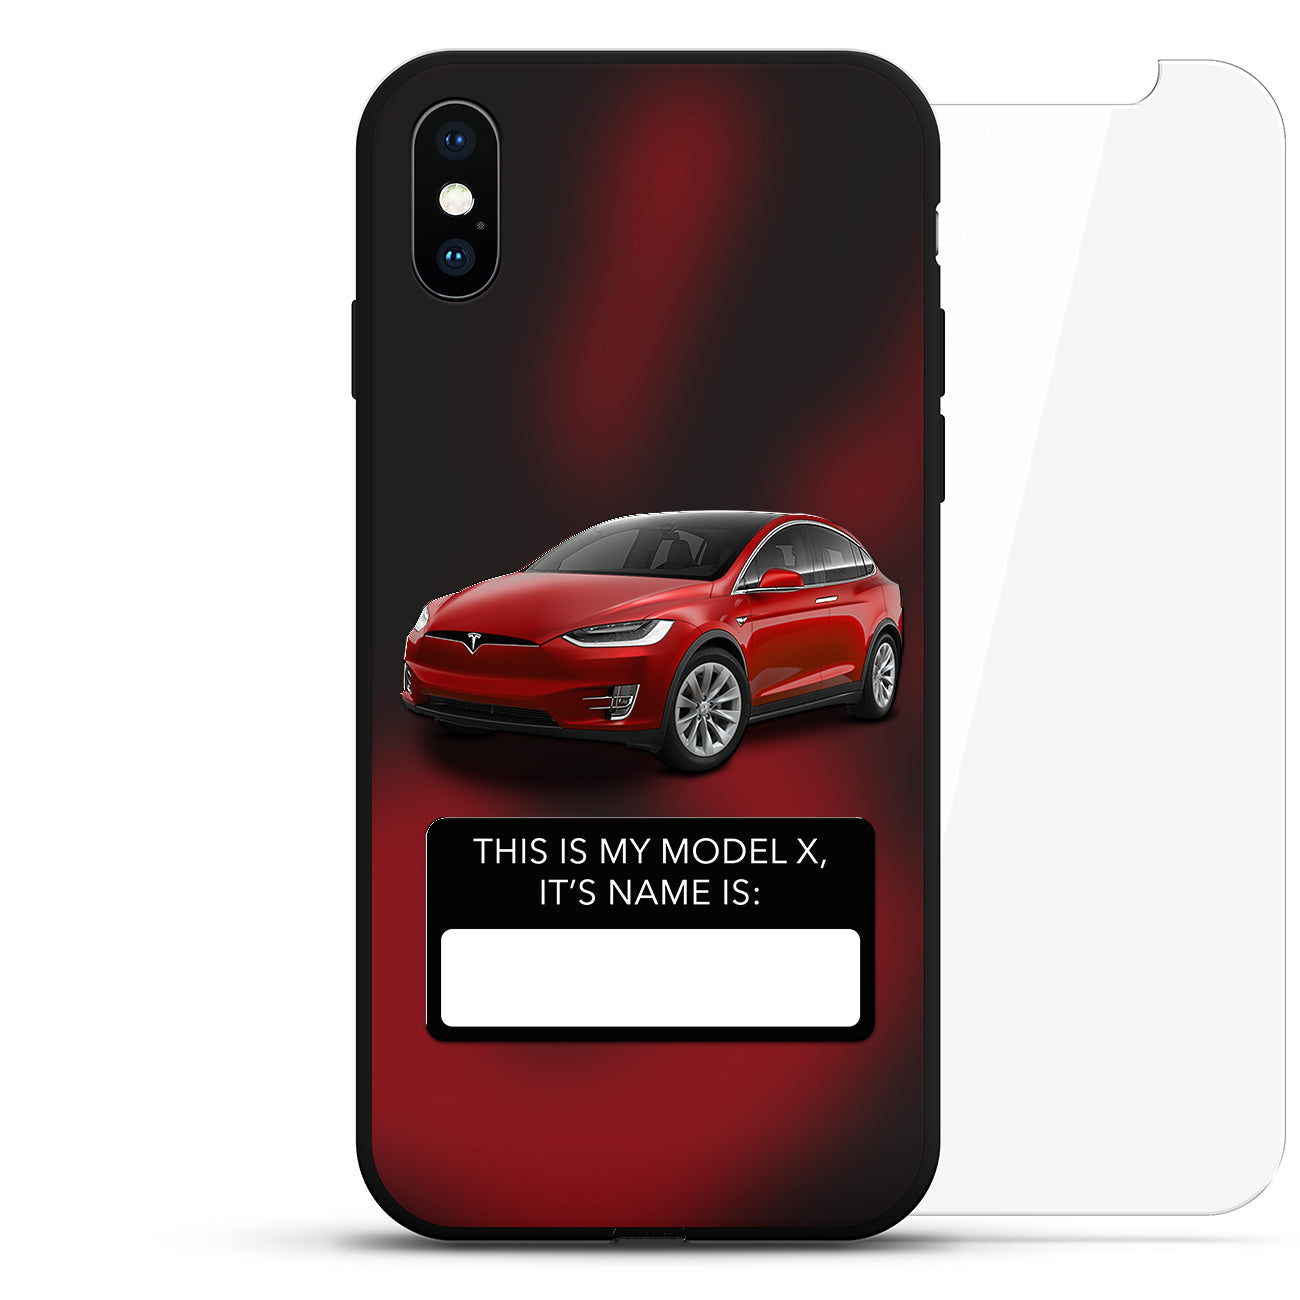 "Model X Nametag: Red Multi-Coat, 20"" Silver Wheels"